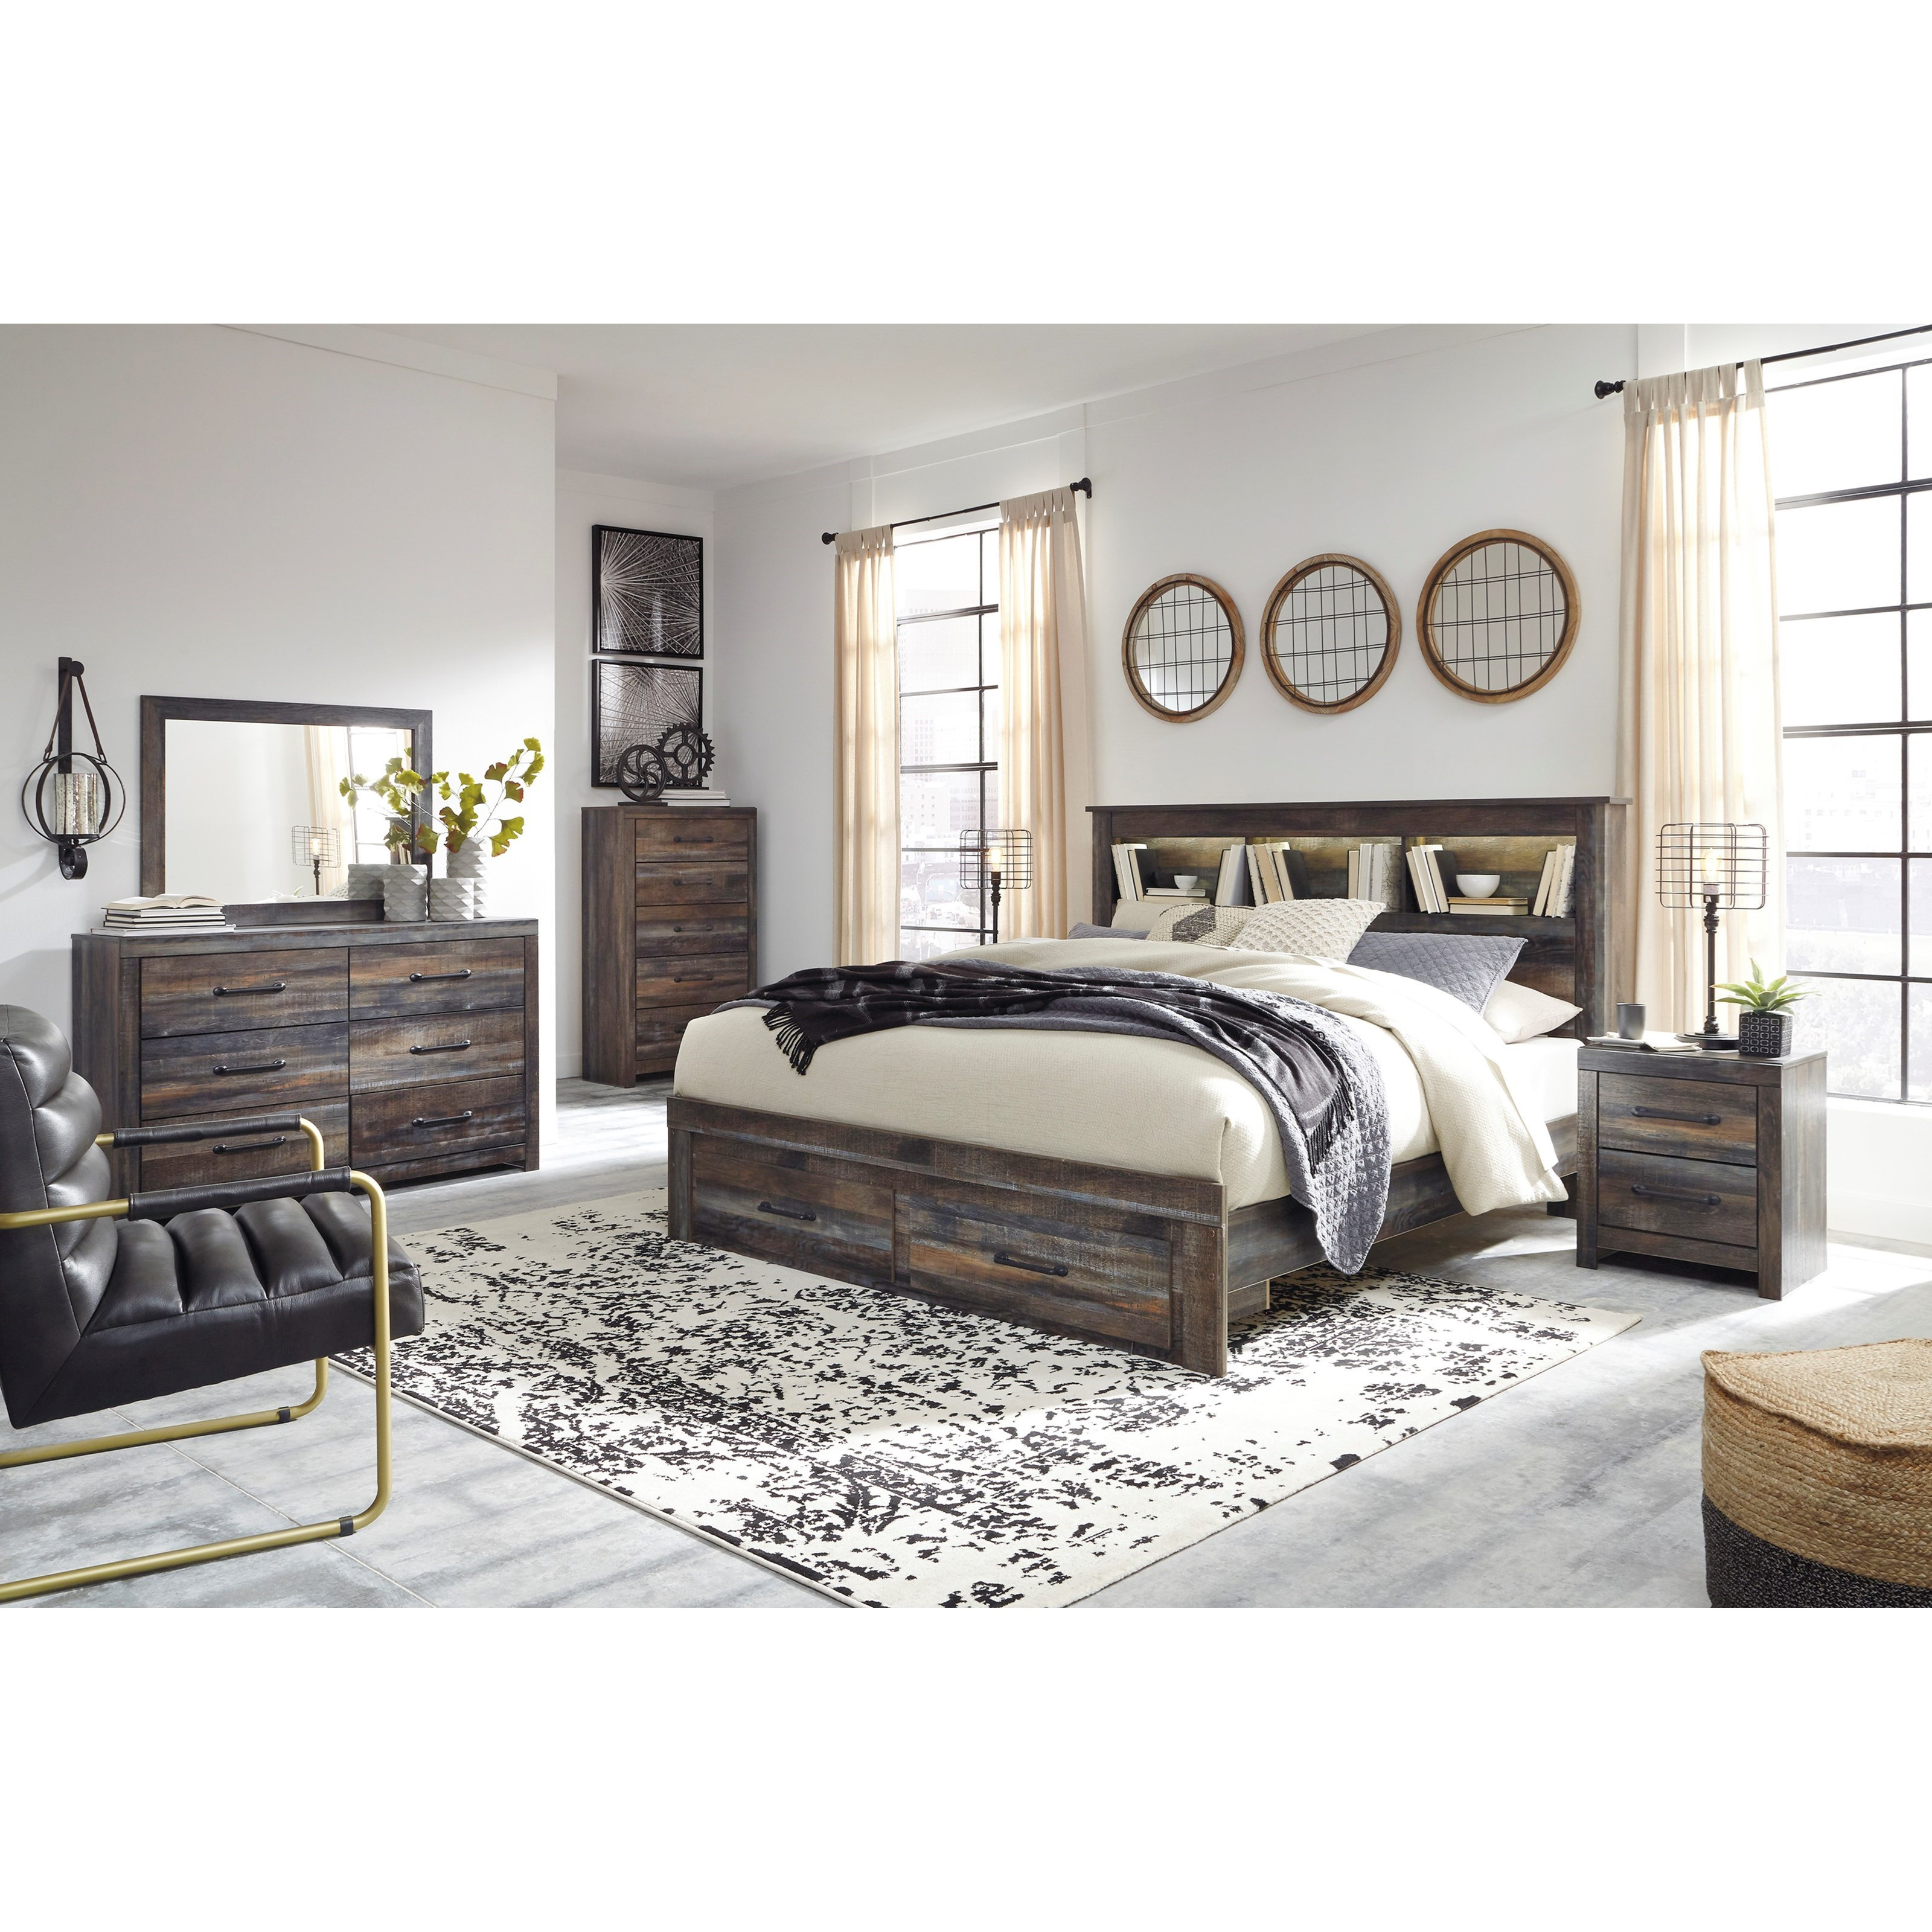 Drystan King Bedroom Group by Signature Design by Ashley at Beds N Stuff